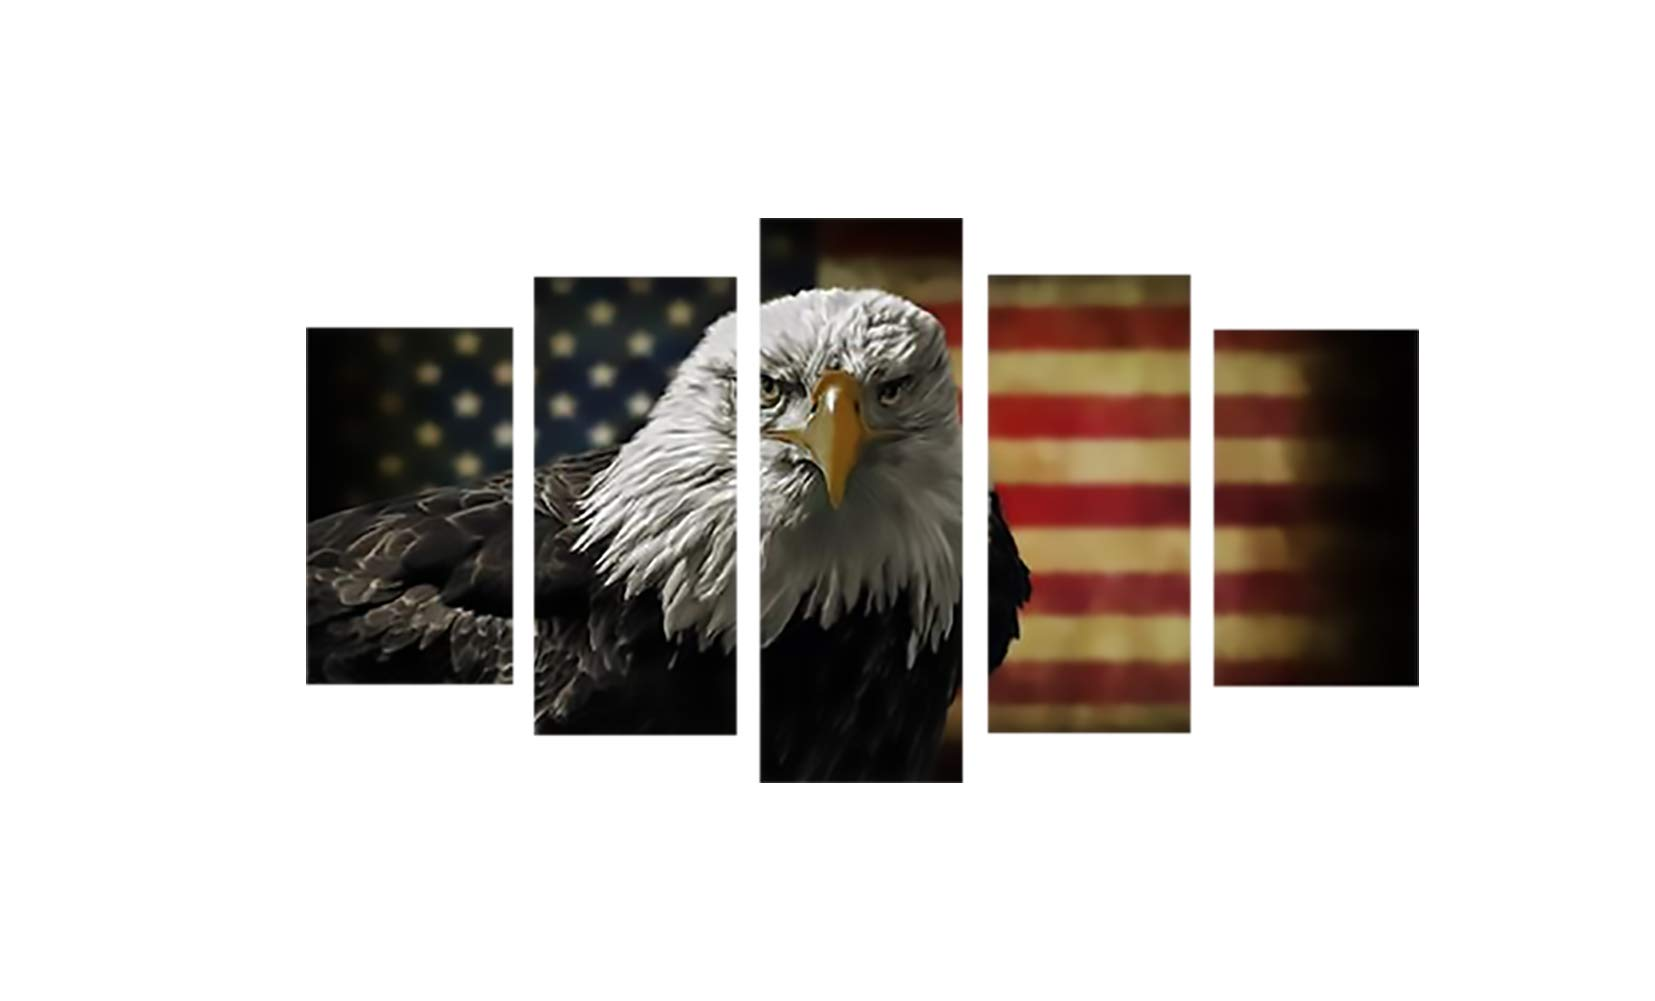 8e581d9d822 Garth Painting Canvas American Flag Eagle Hawk Decorative Wall Art Oil  Painting on Canvas Modern Artwork 5 Panels for Home Bedroom Living Room ...